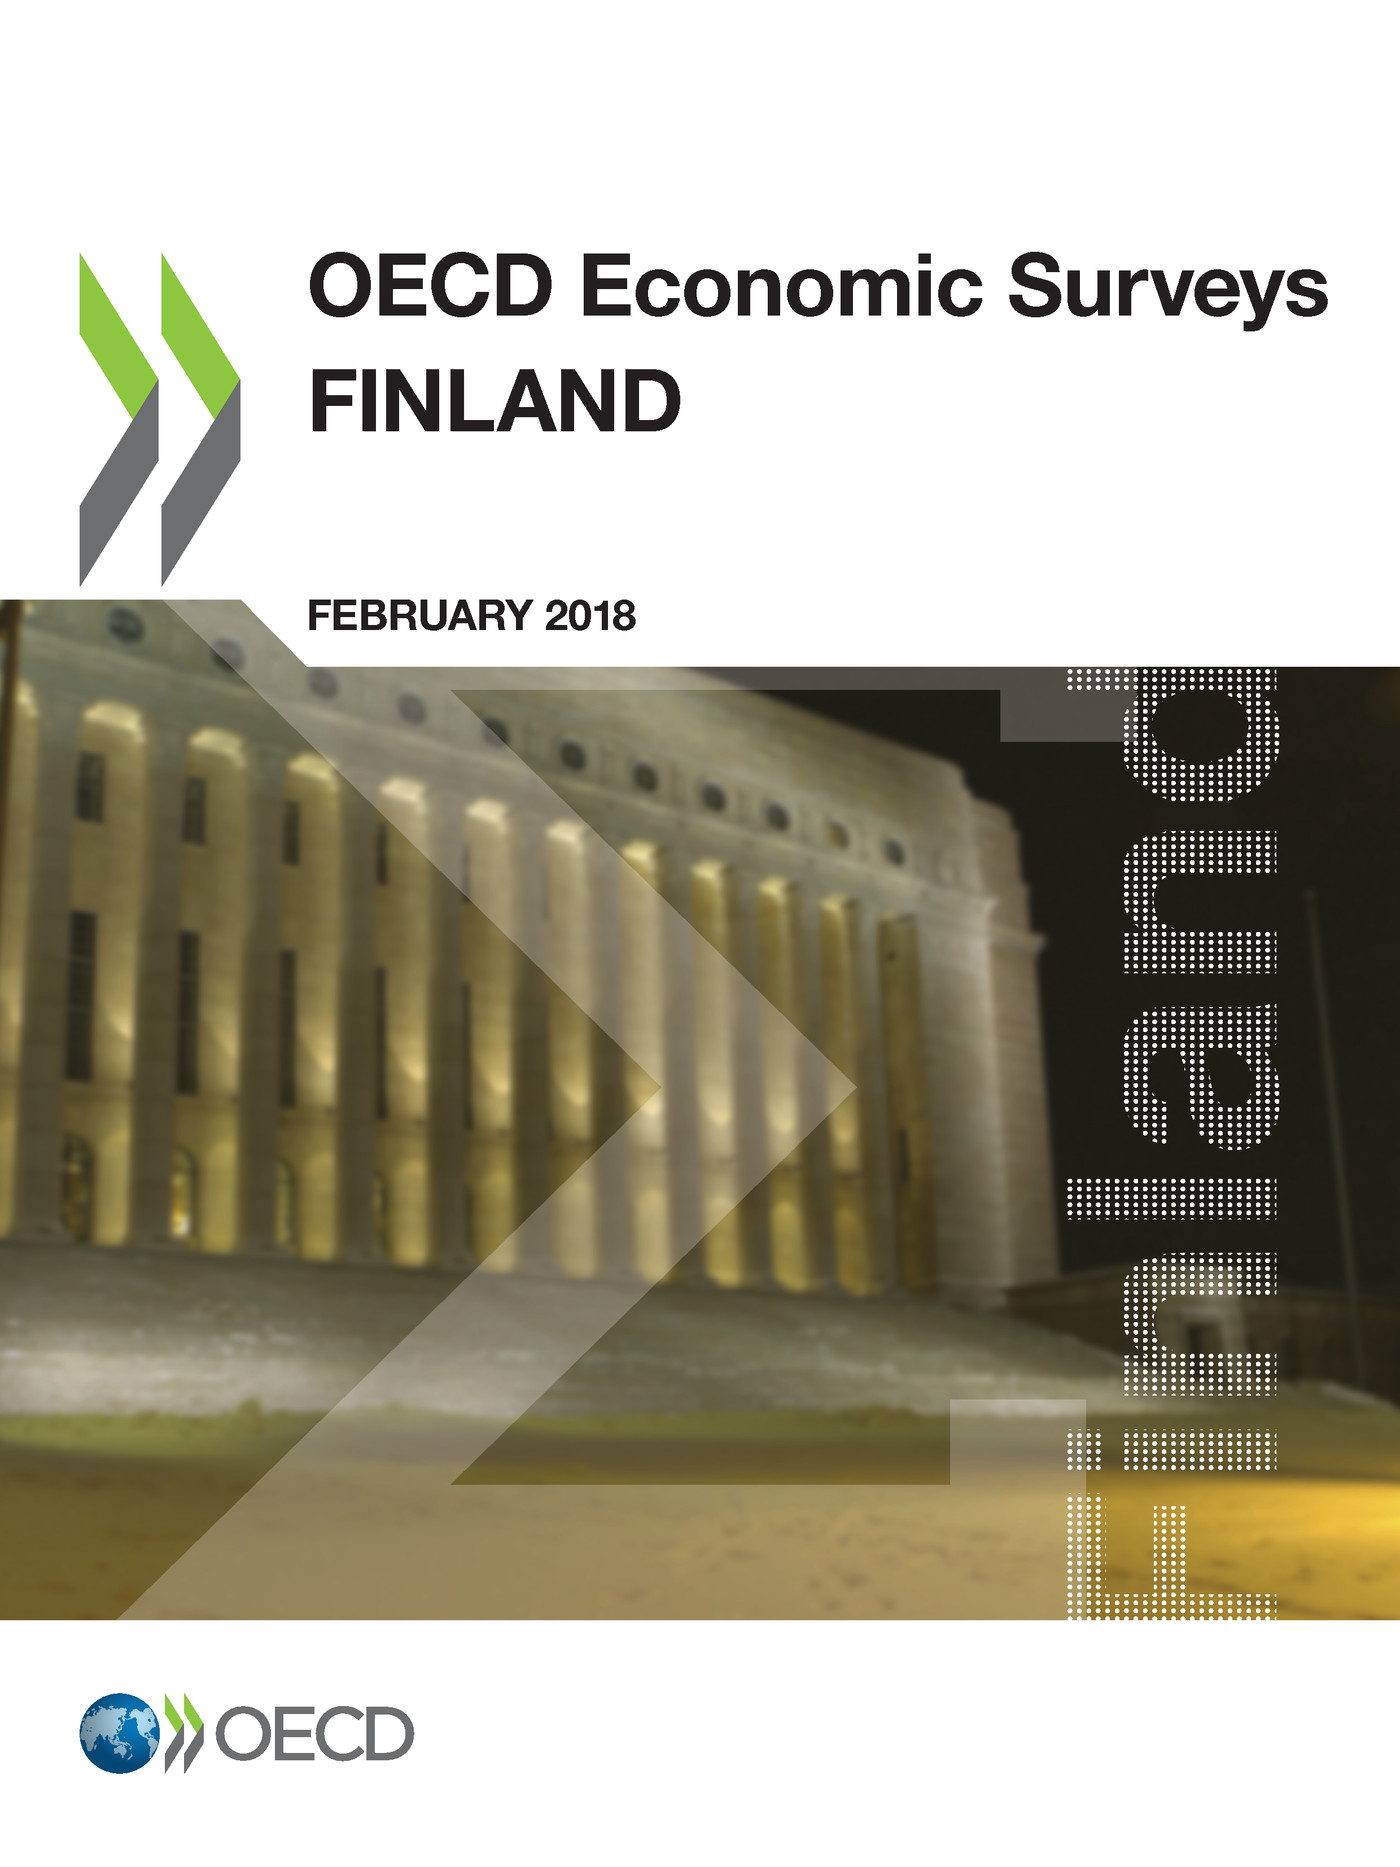 OECD Economic Surveys: Finland 2018 De  Collectif - OCDE / OECD